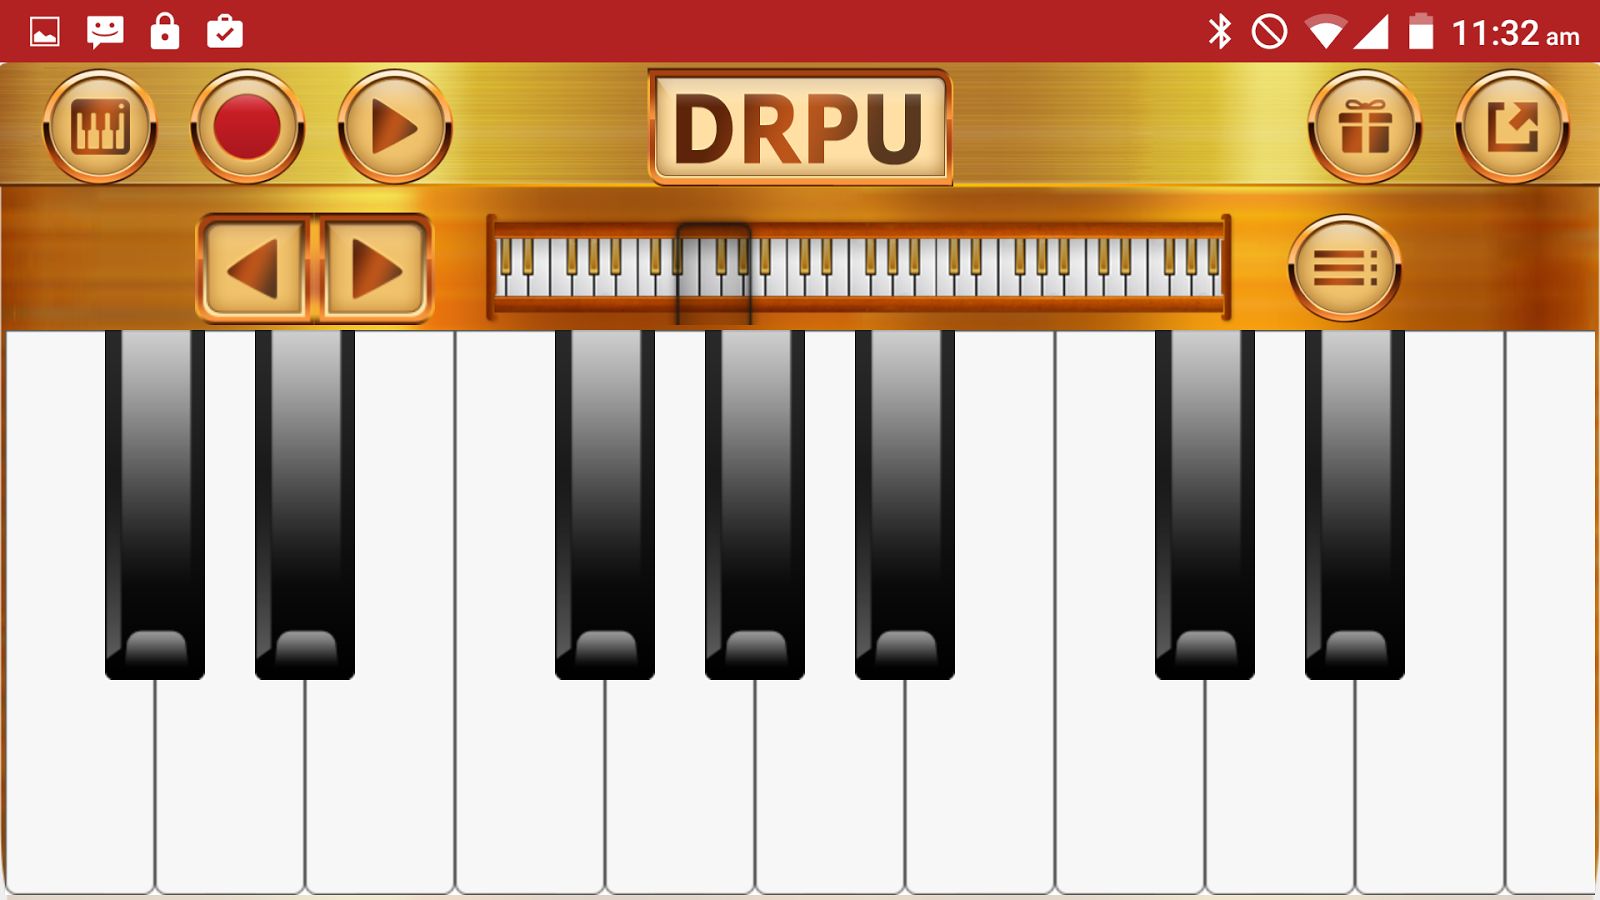 Piano Keyboard Music Pro Screenshot 6